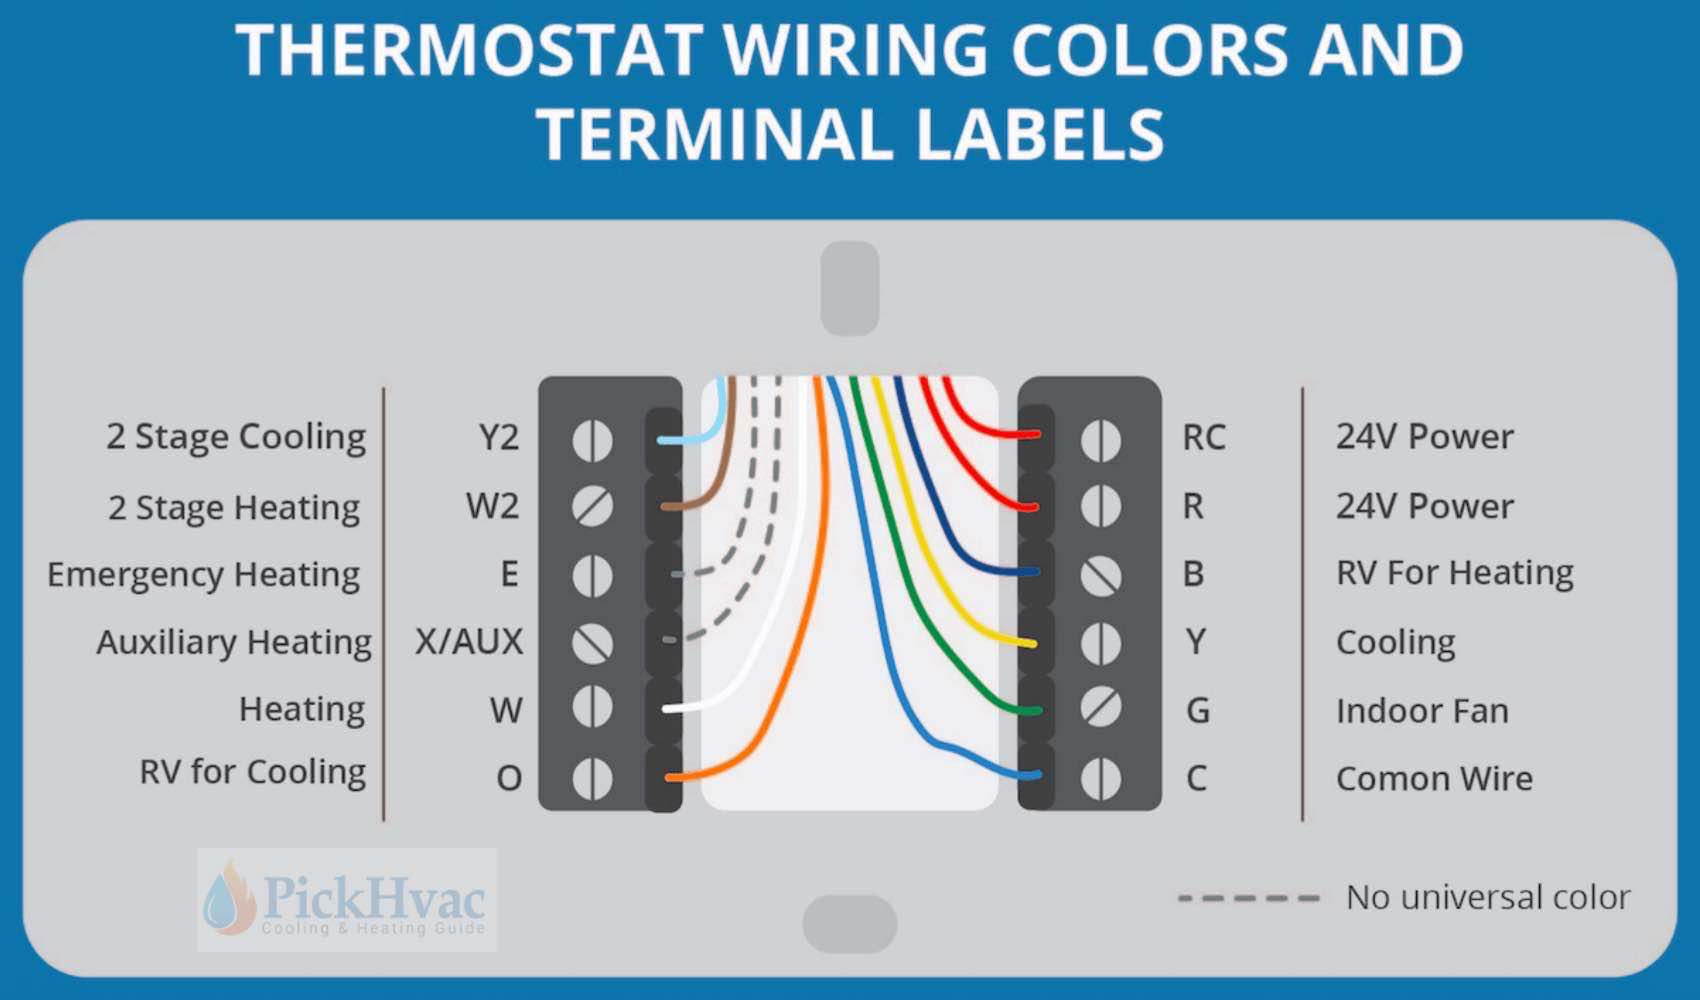 Ultimate Thermostat Buying Guide 2019 – Basics And Options - Nest Wiring Diagram You Got From Our Online Compatibility Checker.